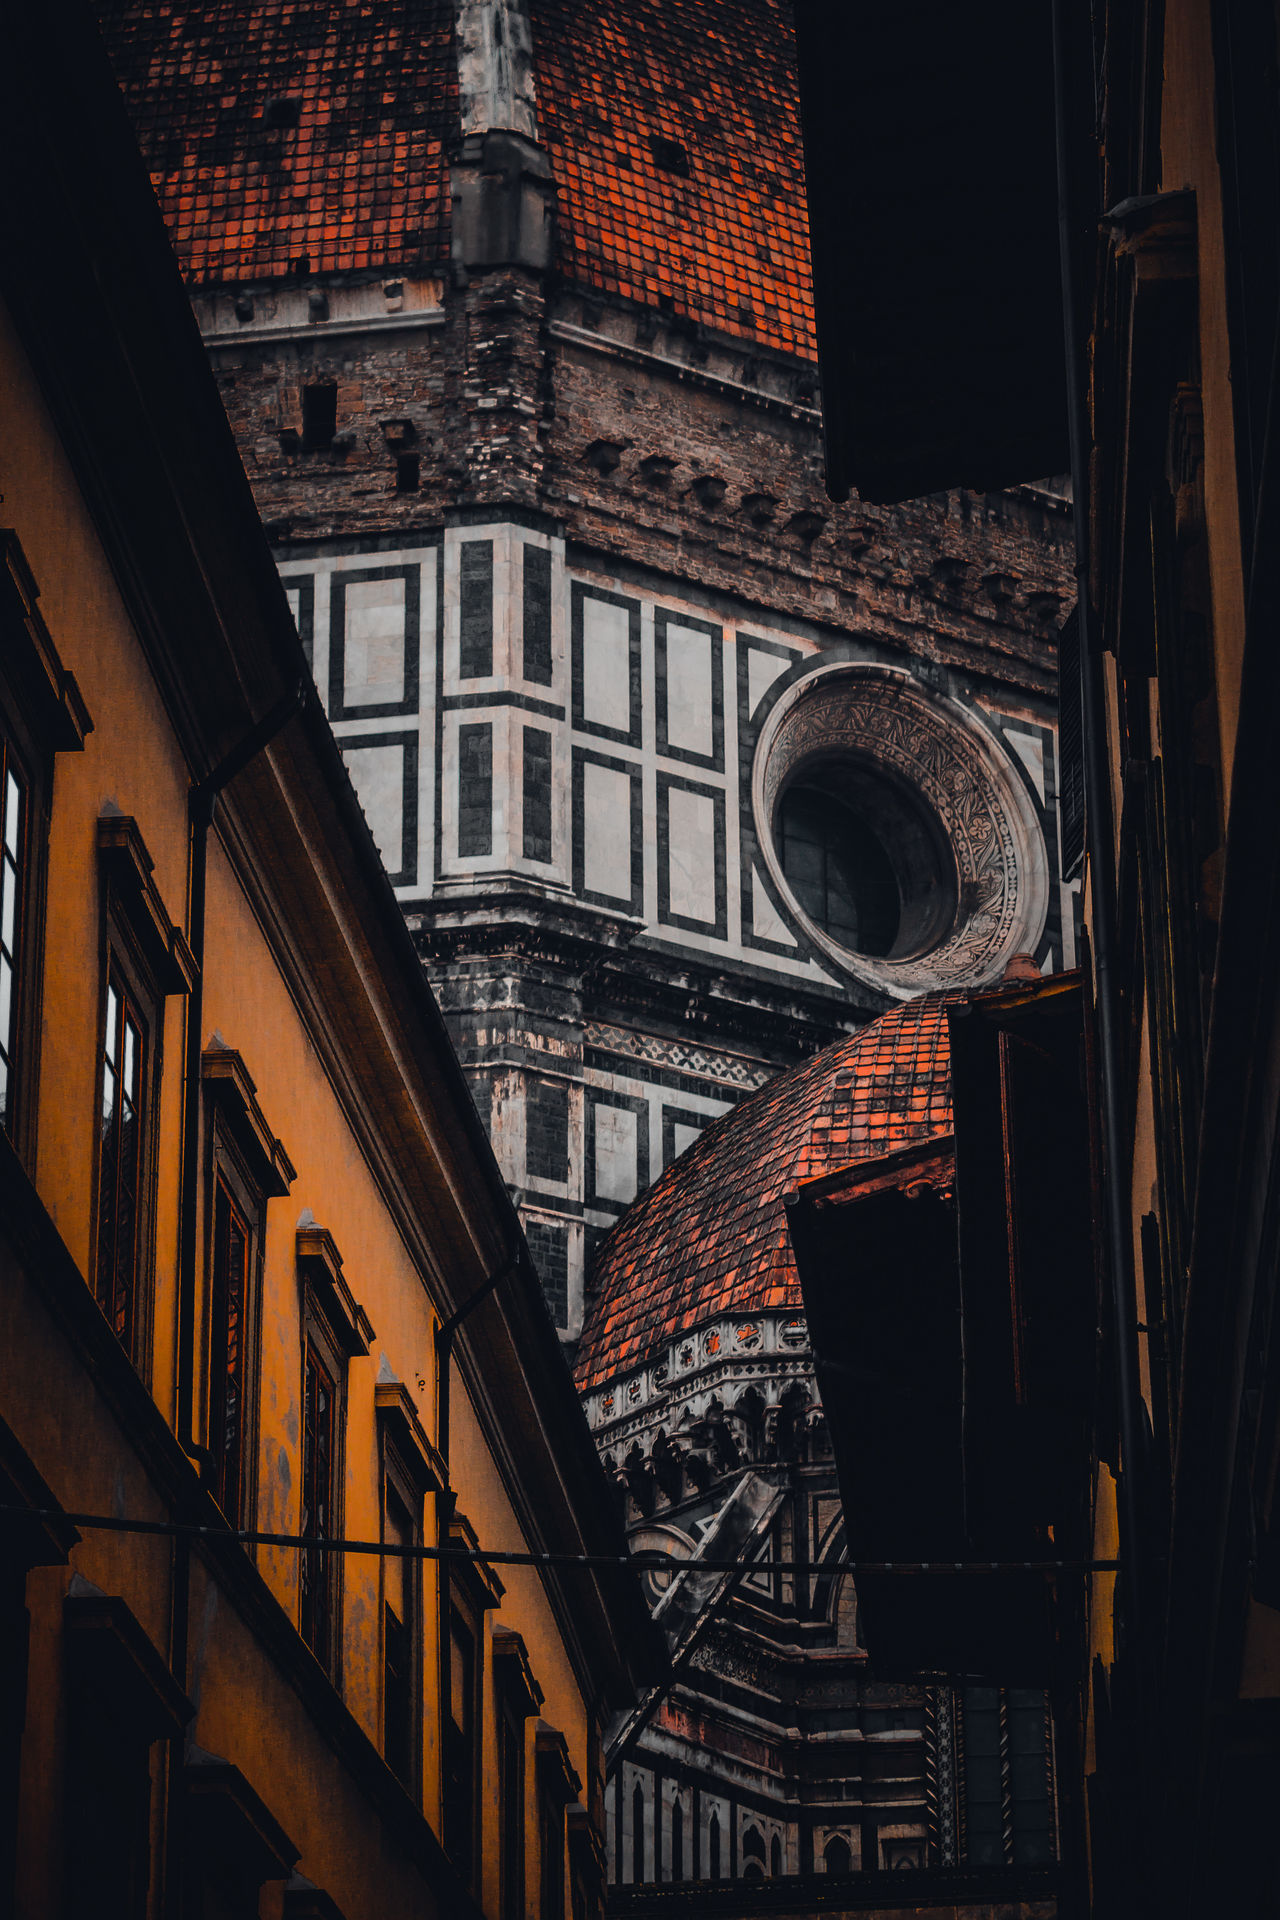 EyeEm Travel Destinations Built Structure Architecture Tourism Modern Building Exterior City No People Night Indoors  Sunlight EyeEm Gallery EyeEmBestEdits EyeEm Best Shots EyeEm Best Edits Day Florence Duomo City Architecture History Abstract Cool Old-fashioned